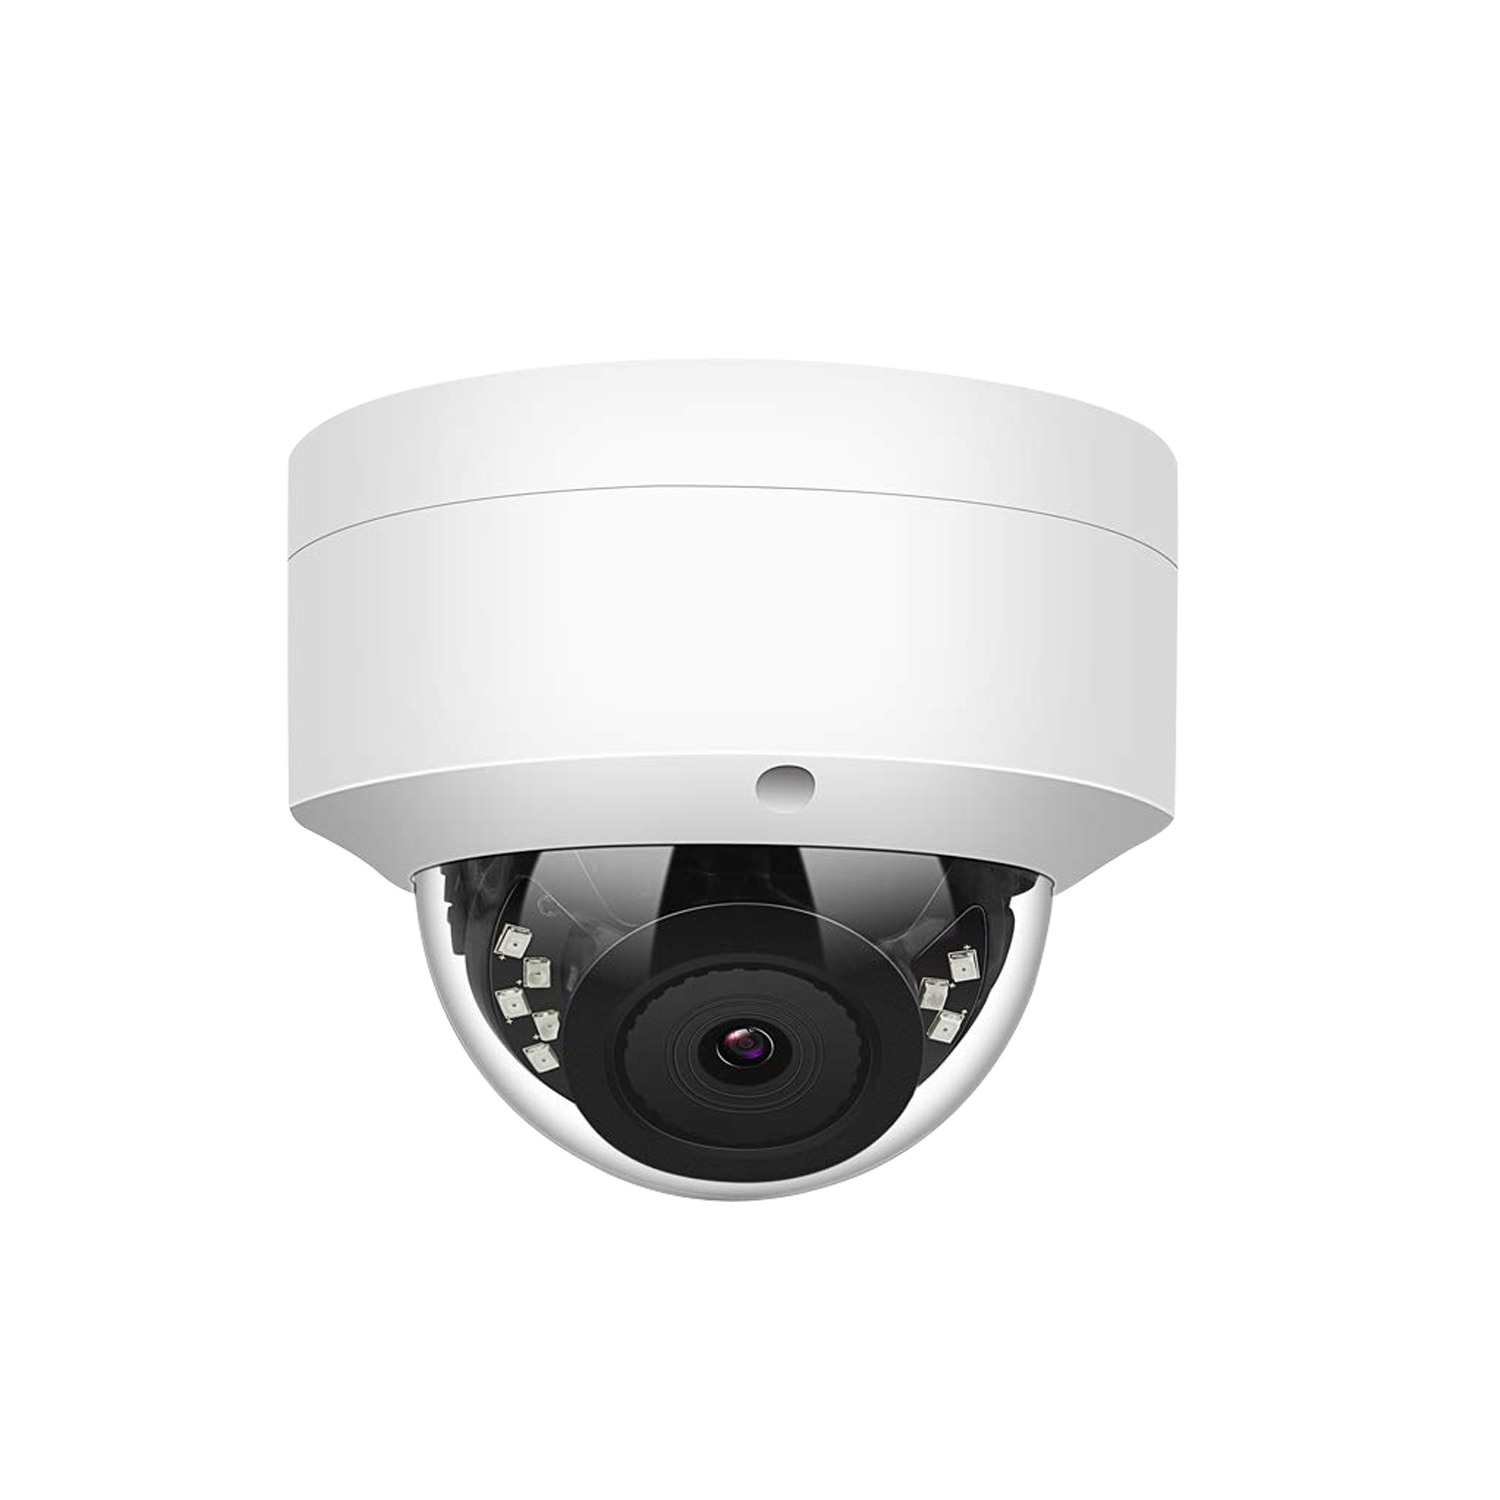 2020 YCX 8MP CCTV IP POE Camera 4K Professional Network Security CCTV Cameras IP66 Dome camera